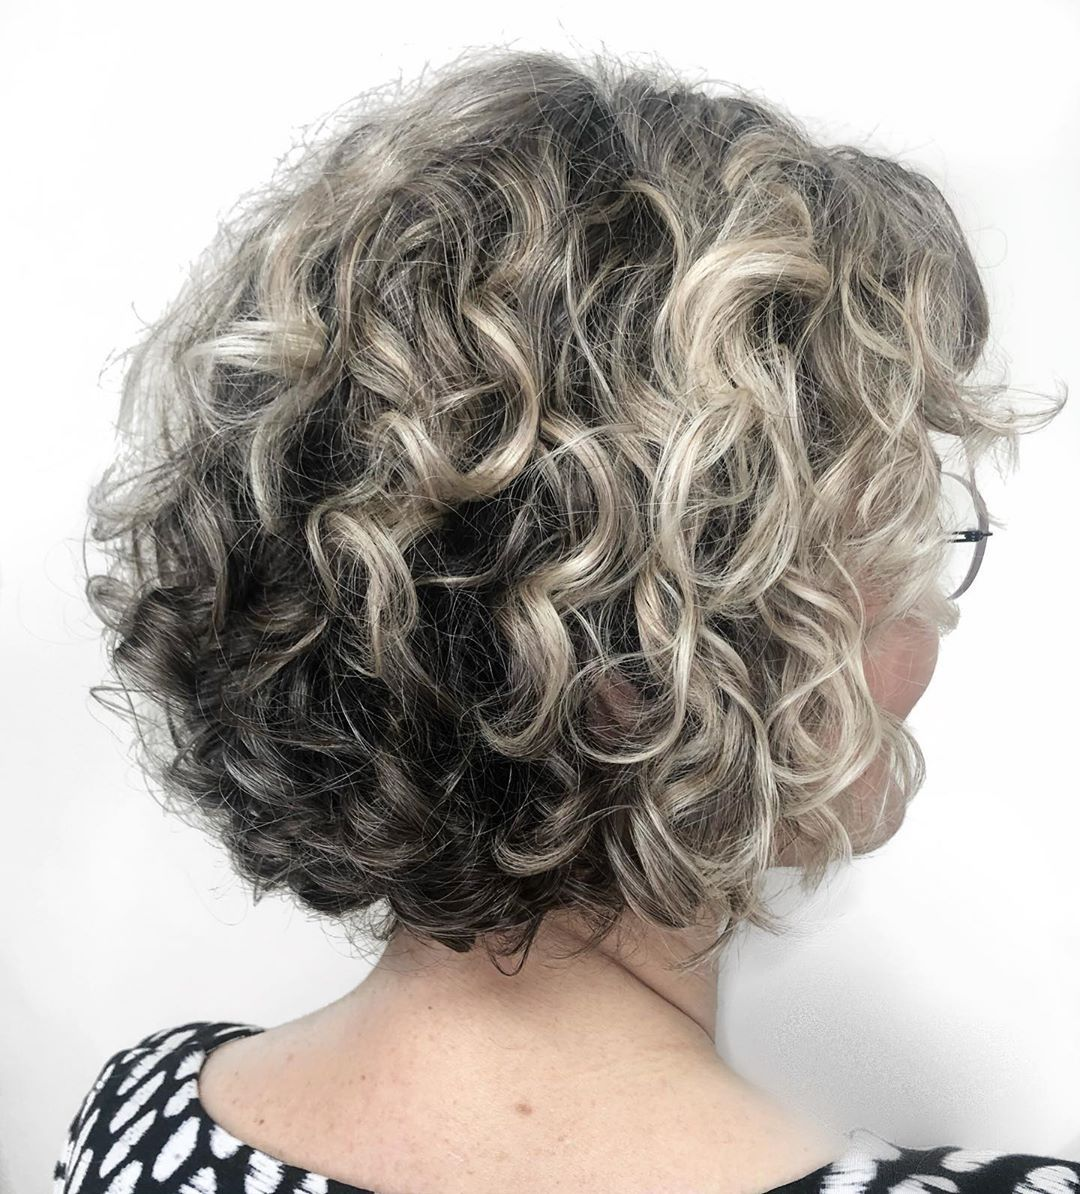 Anjelica Curly Hair Specialist On Instagram G R A Y Hair Yep I Said It We Are All Going To Get Th Curly Hair Styles Curly Hair Specialist Grey Hair Color